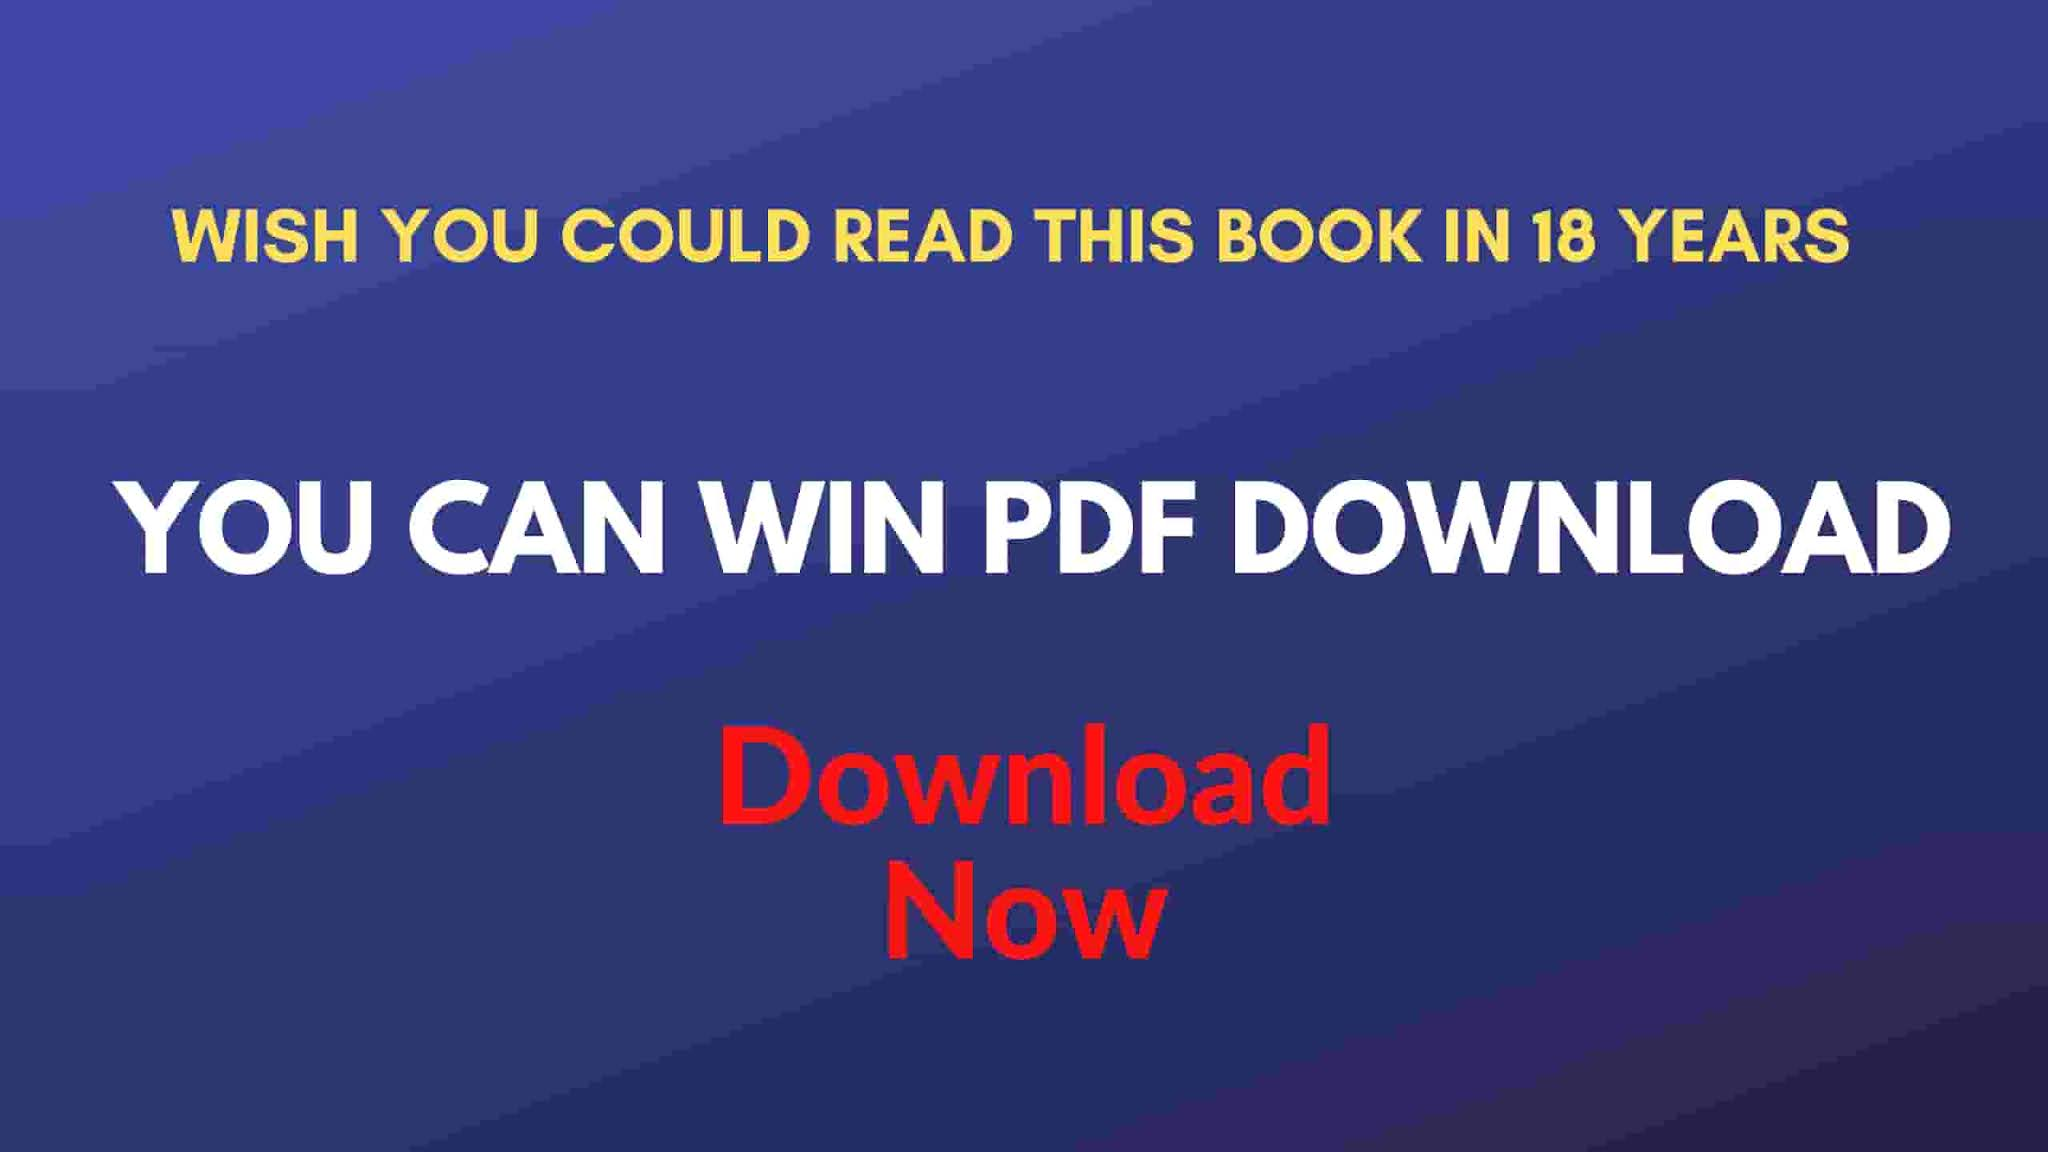 You Can Win PDF Free Download